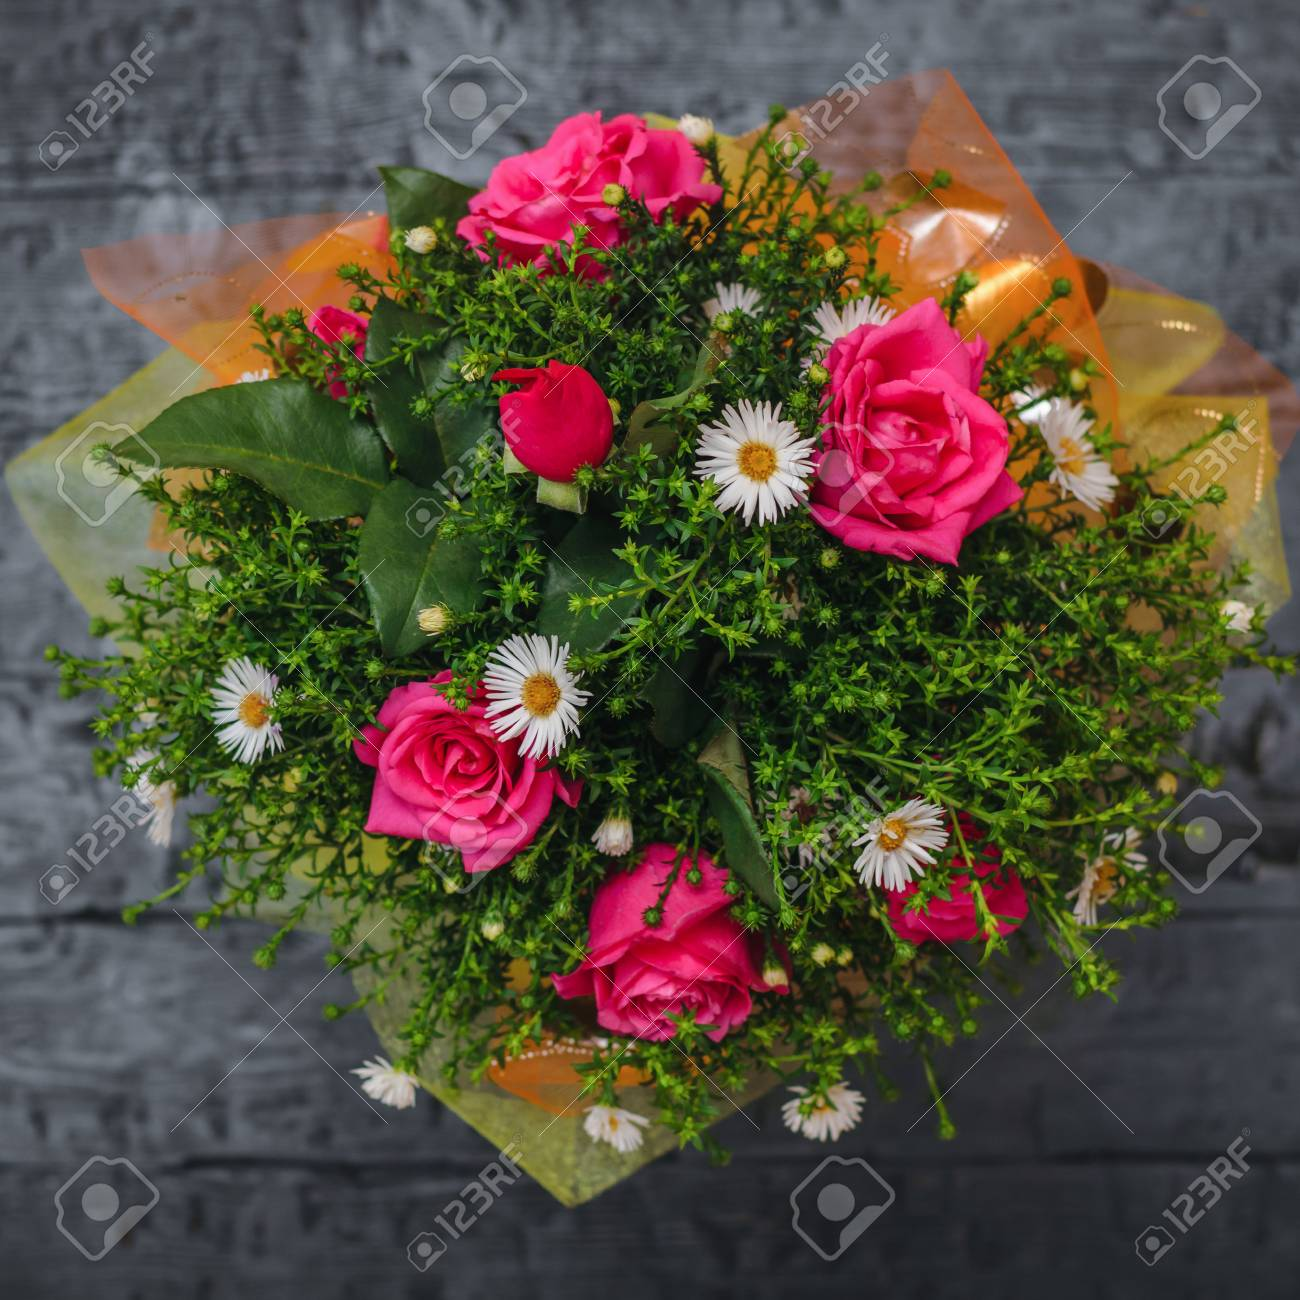 Beautiful Bouquet Of Red And White Flowers With Green Plants Stock Photo Picture And Royalty Free Image Image 108267891